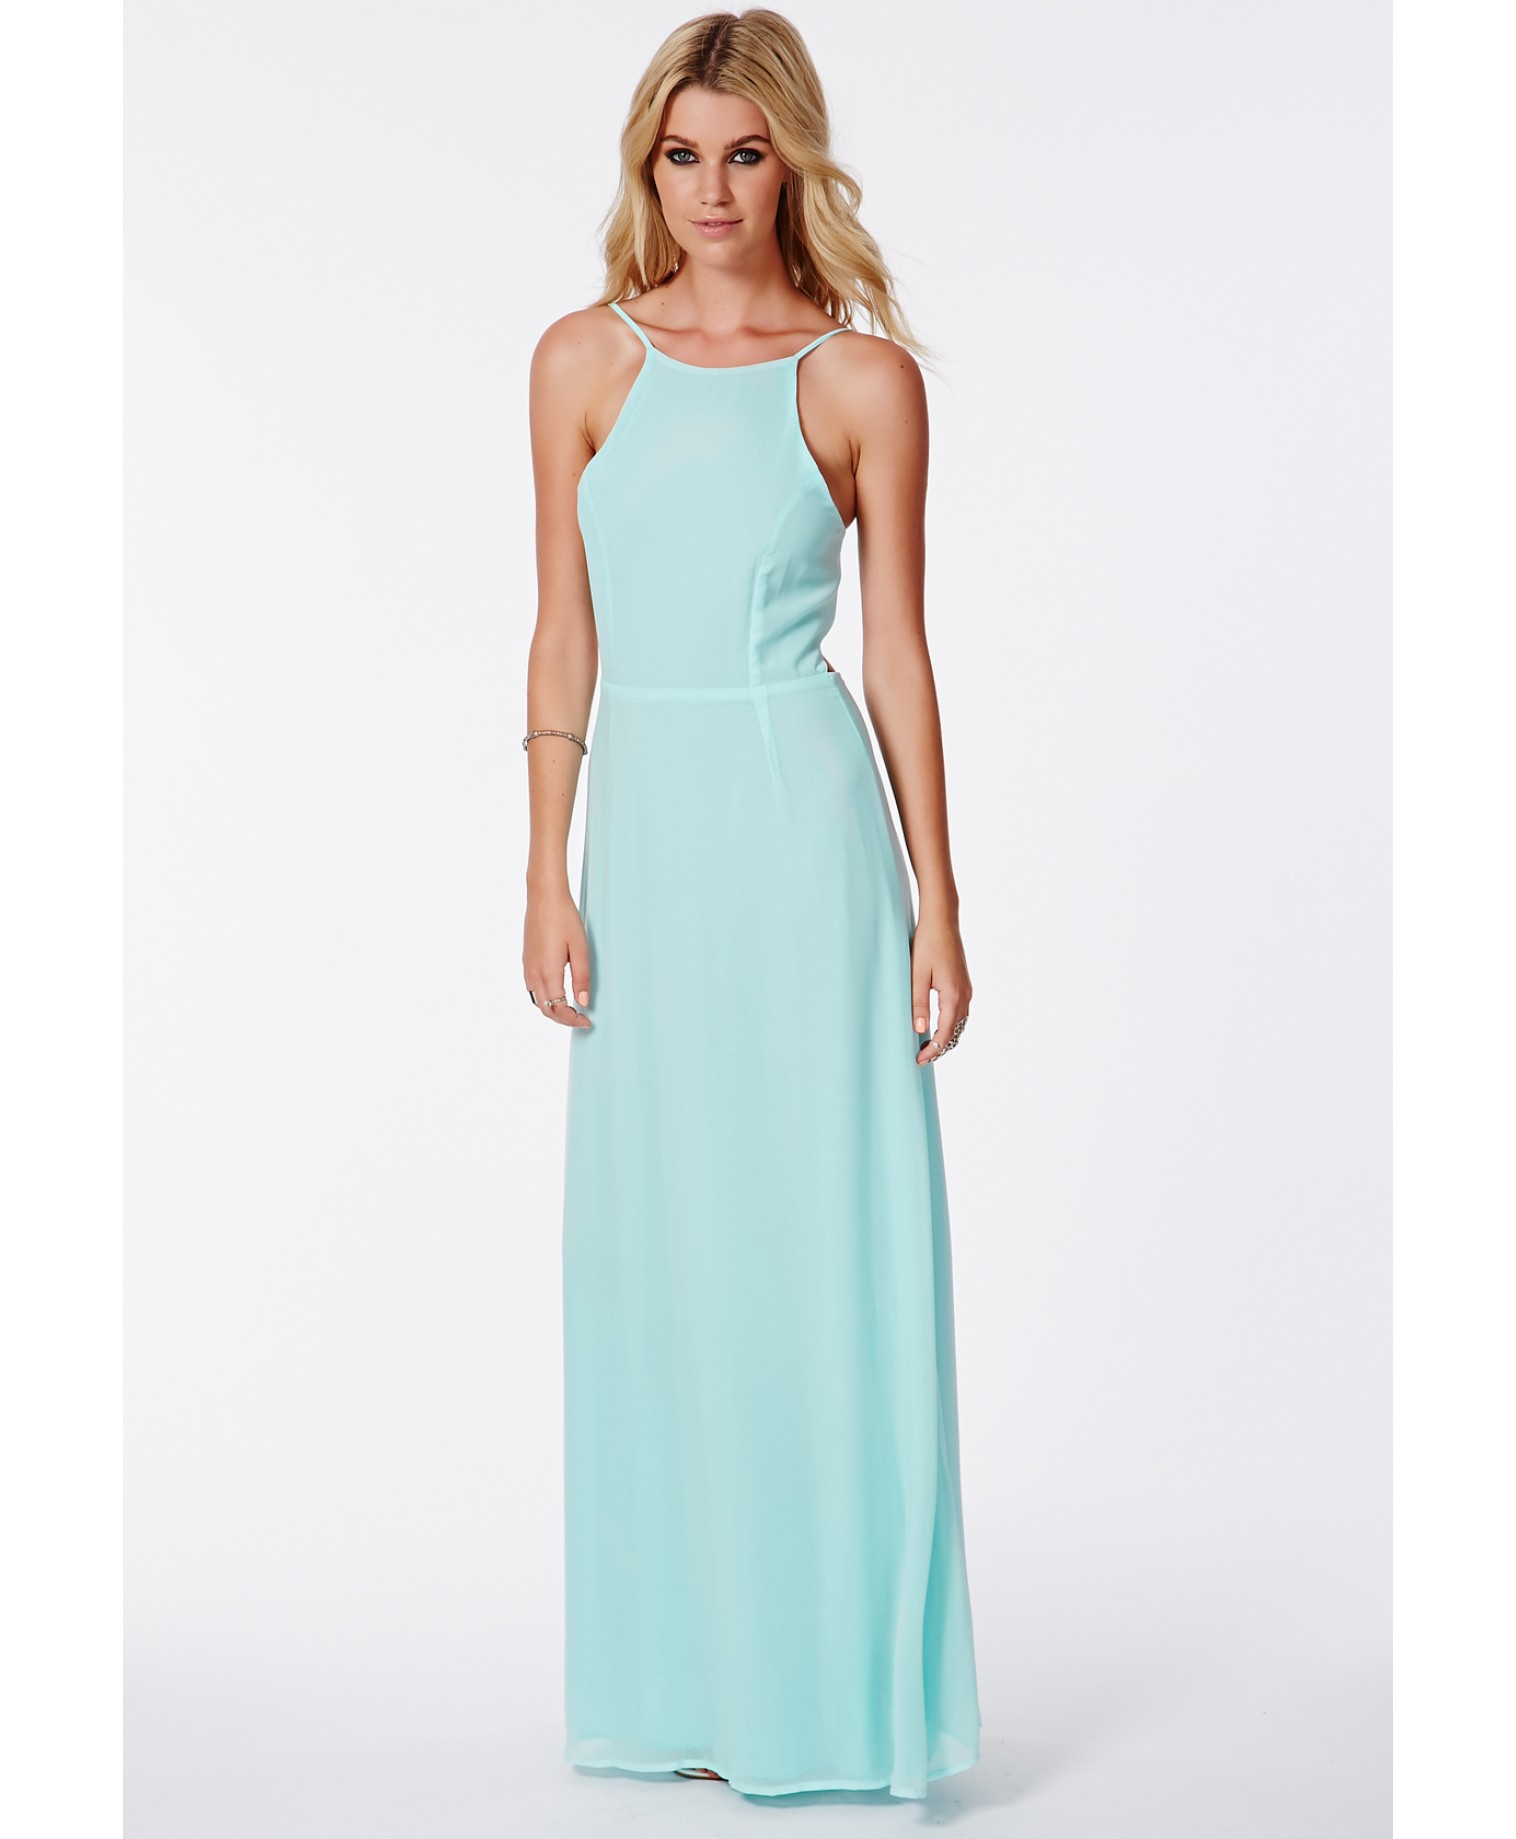 Unique Prom Dresses Missguided Gift - All Wedding Dresses ...